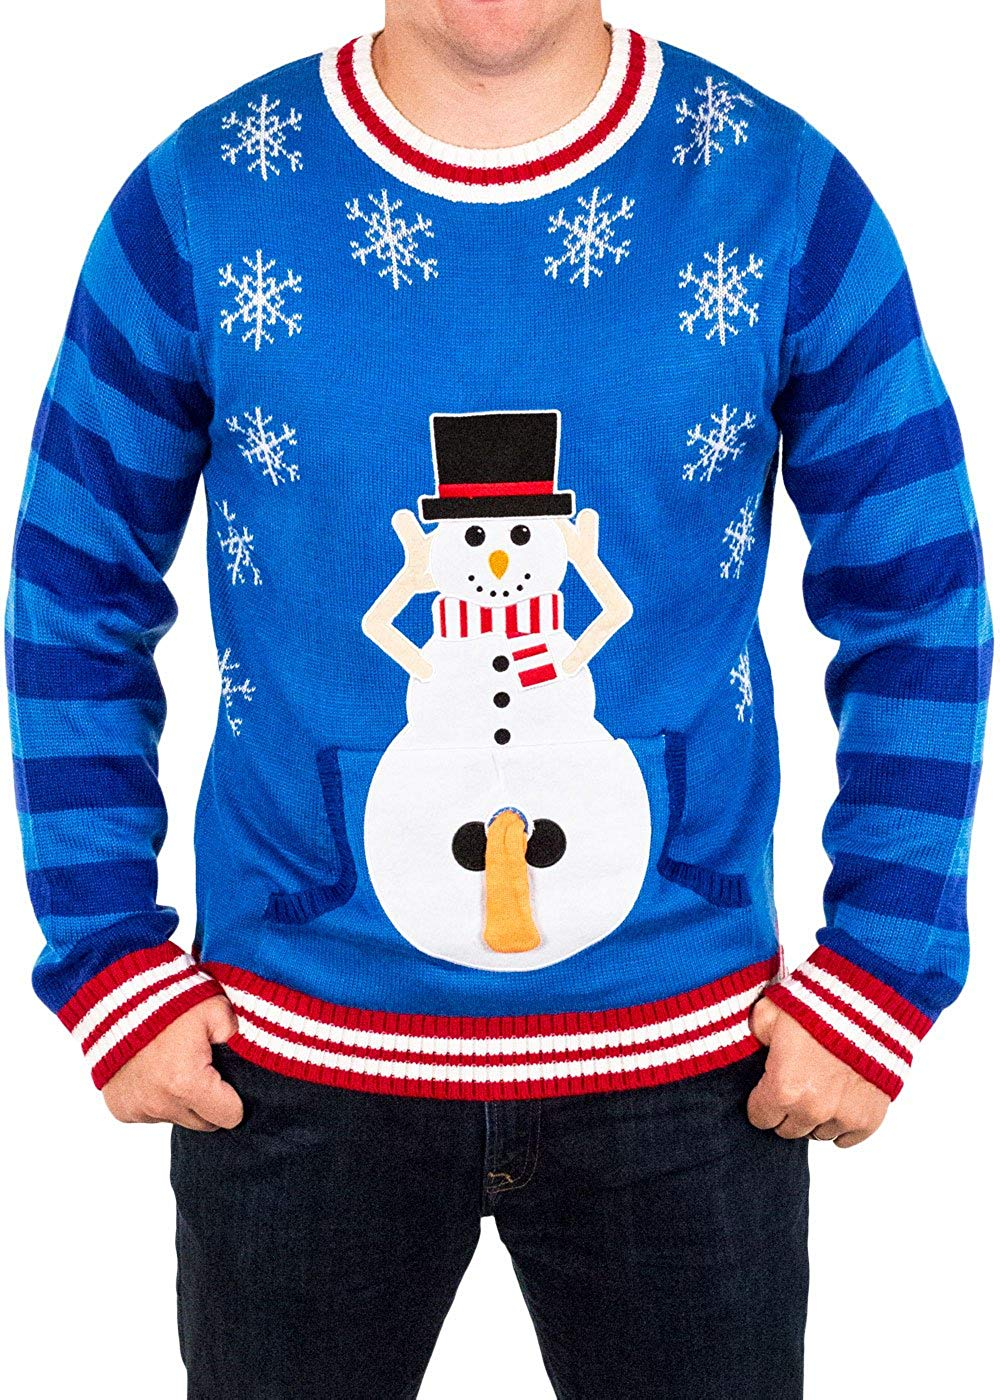 f251a490d This is one of the raunchiest Christmas sweaters I ve ever seen. There is a  front pocket that you can stick your finger ...